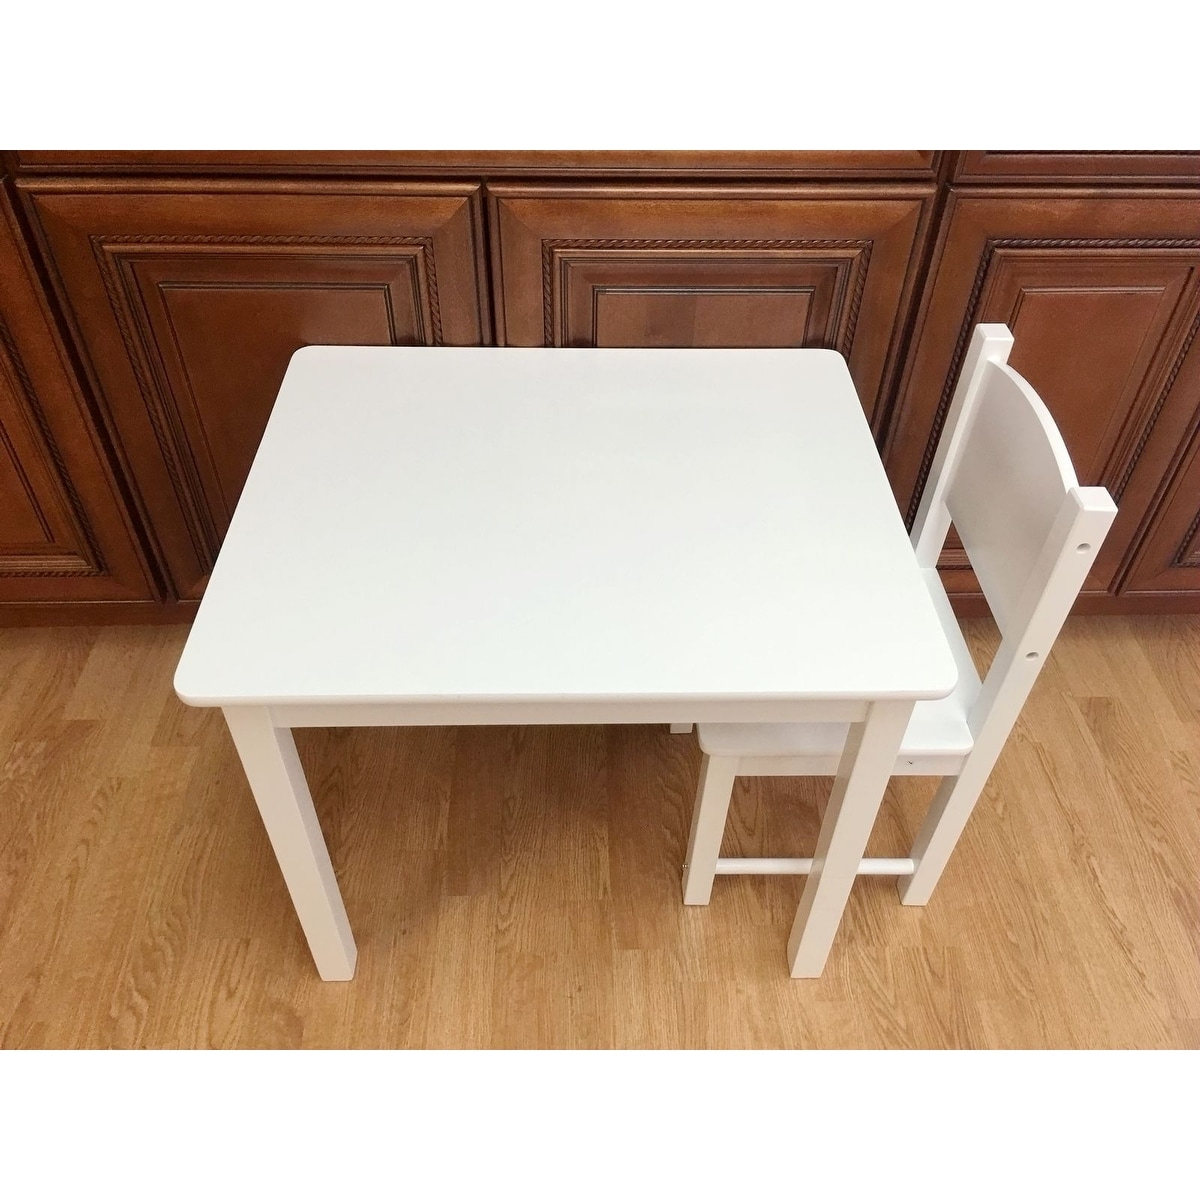 Shop Kidu0027s Table And 2 Chairs Set Solid Hard Wood Sturdy Child Table And  Chairs White   Free Shipping Today   Overstock   21957594